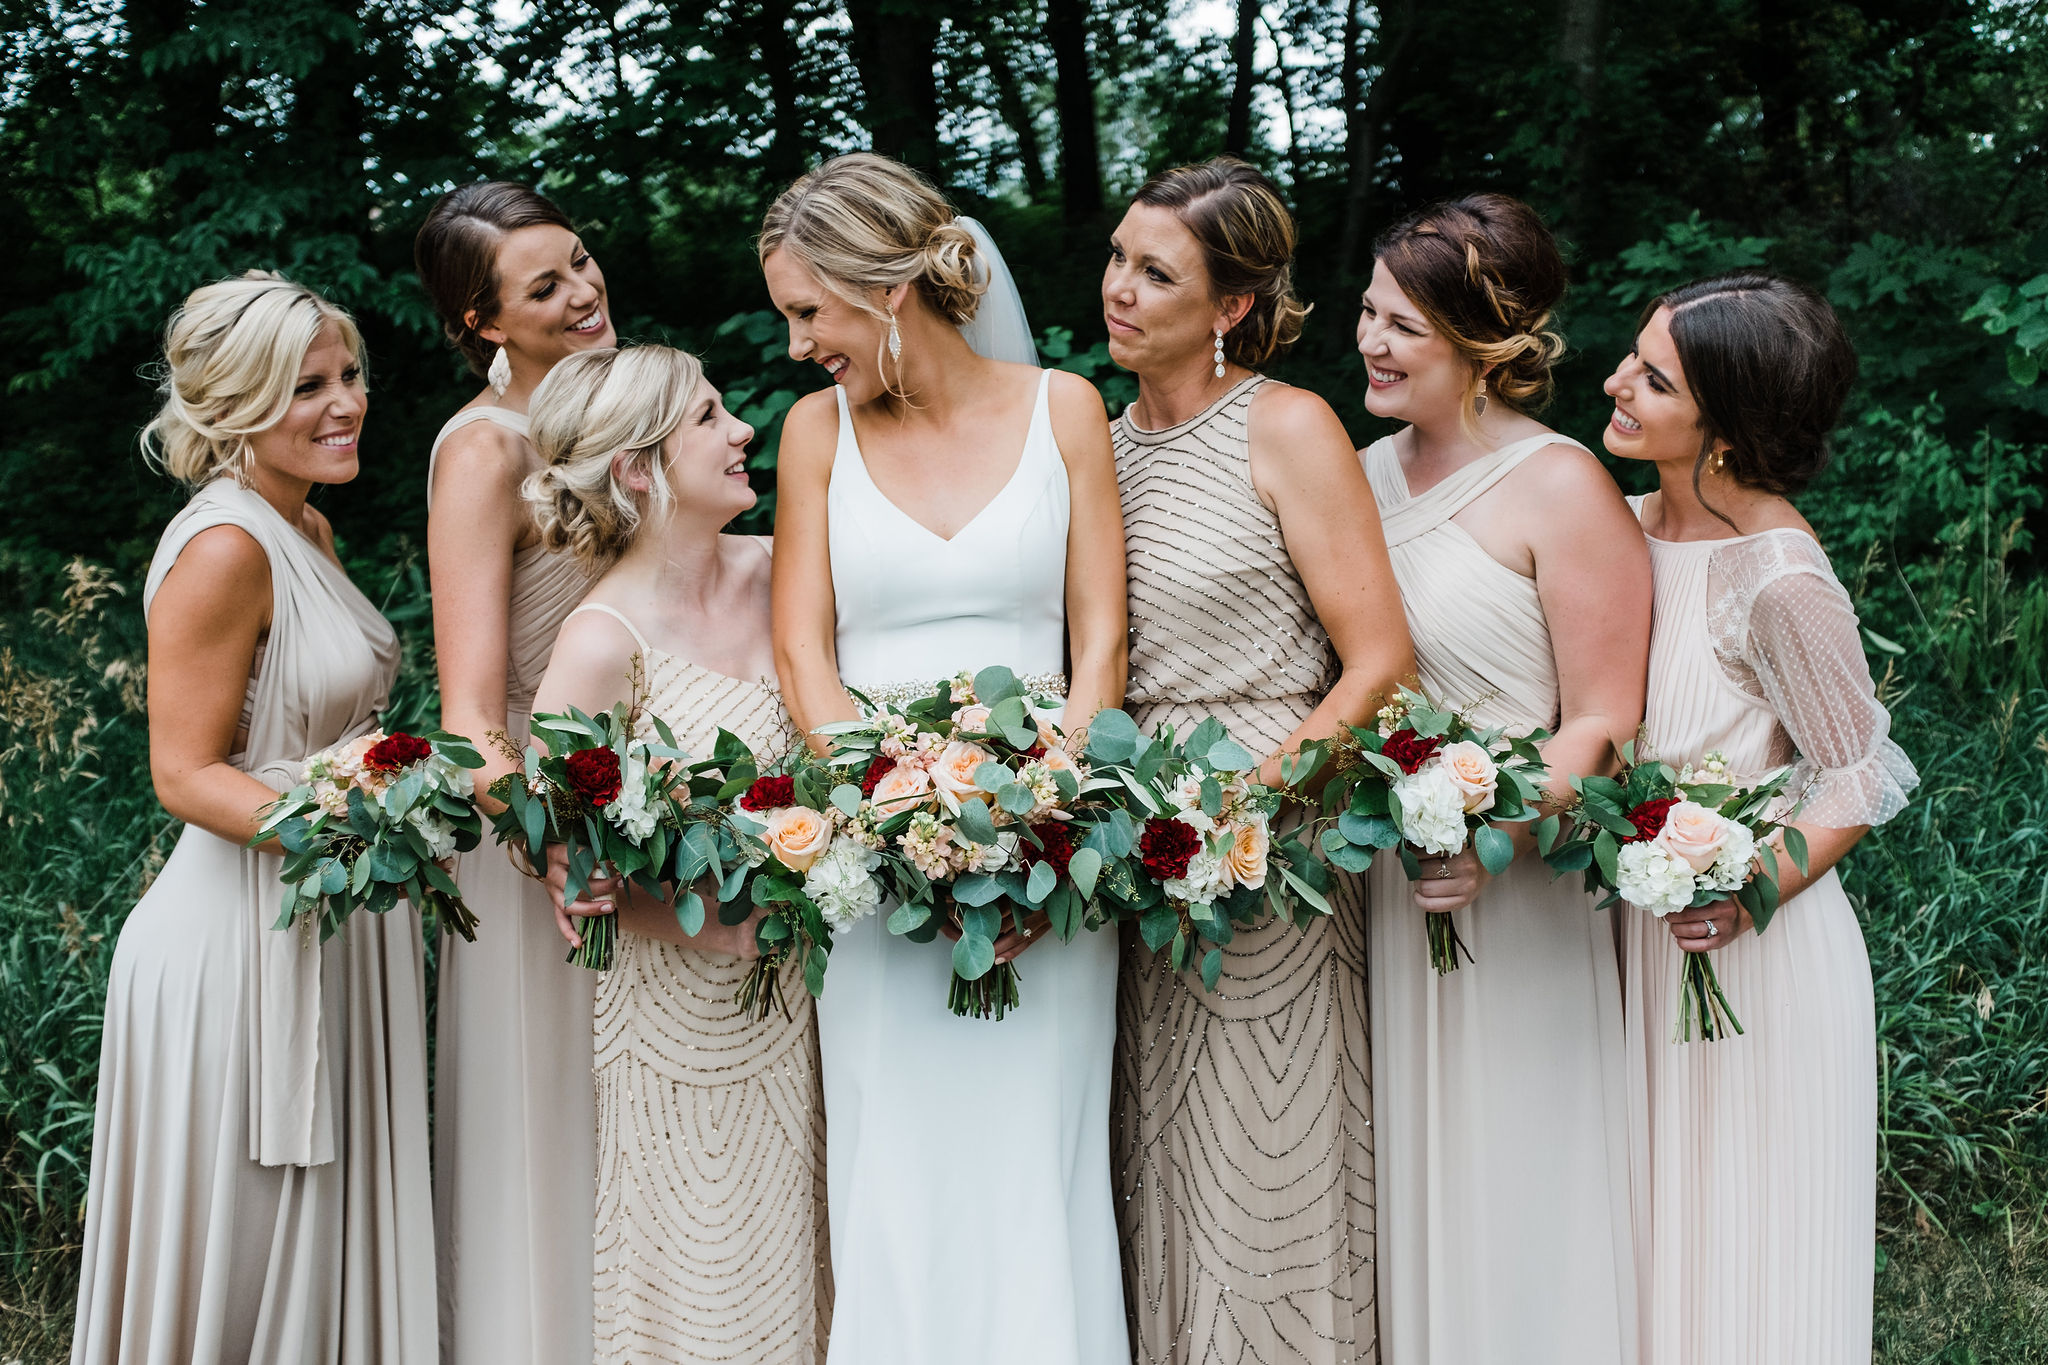 Bridesmaids Dresses Kansas City